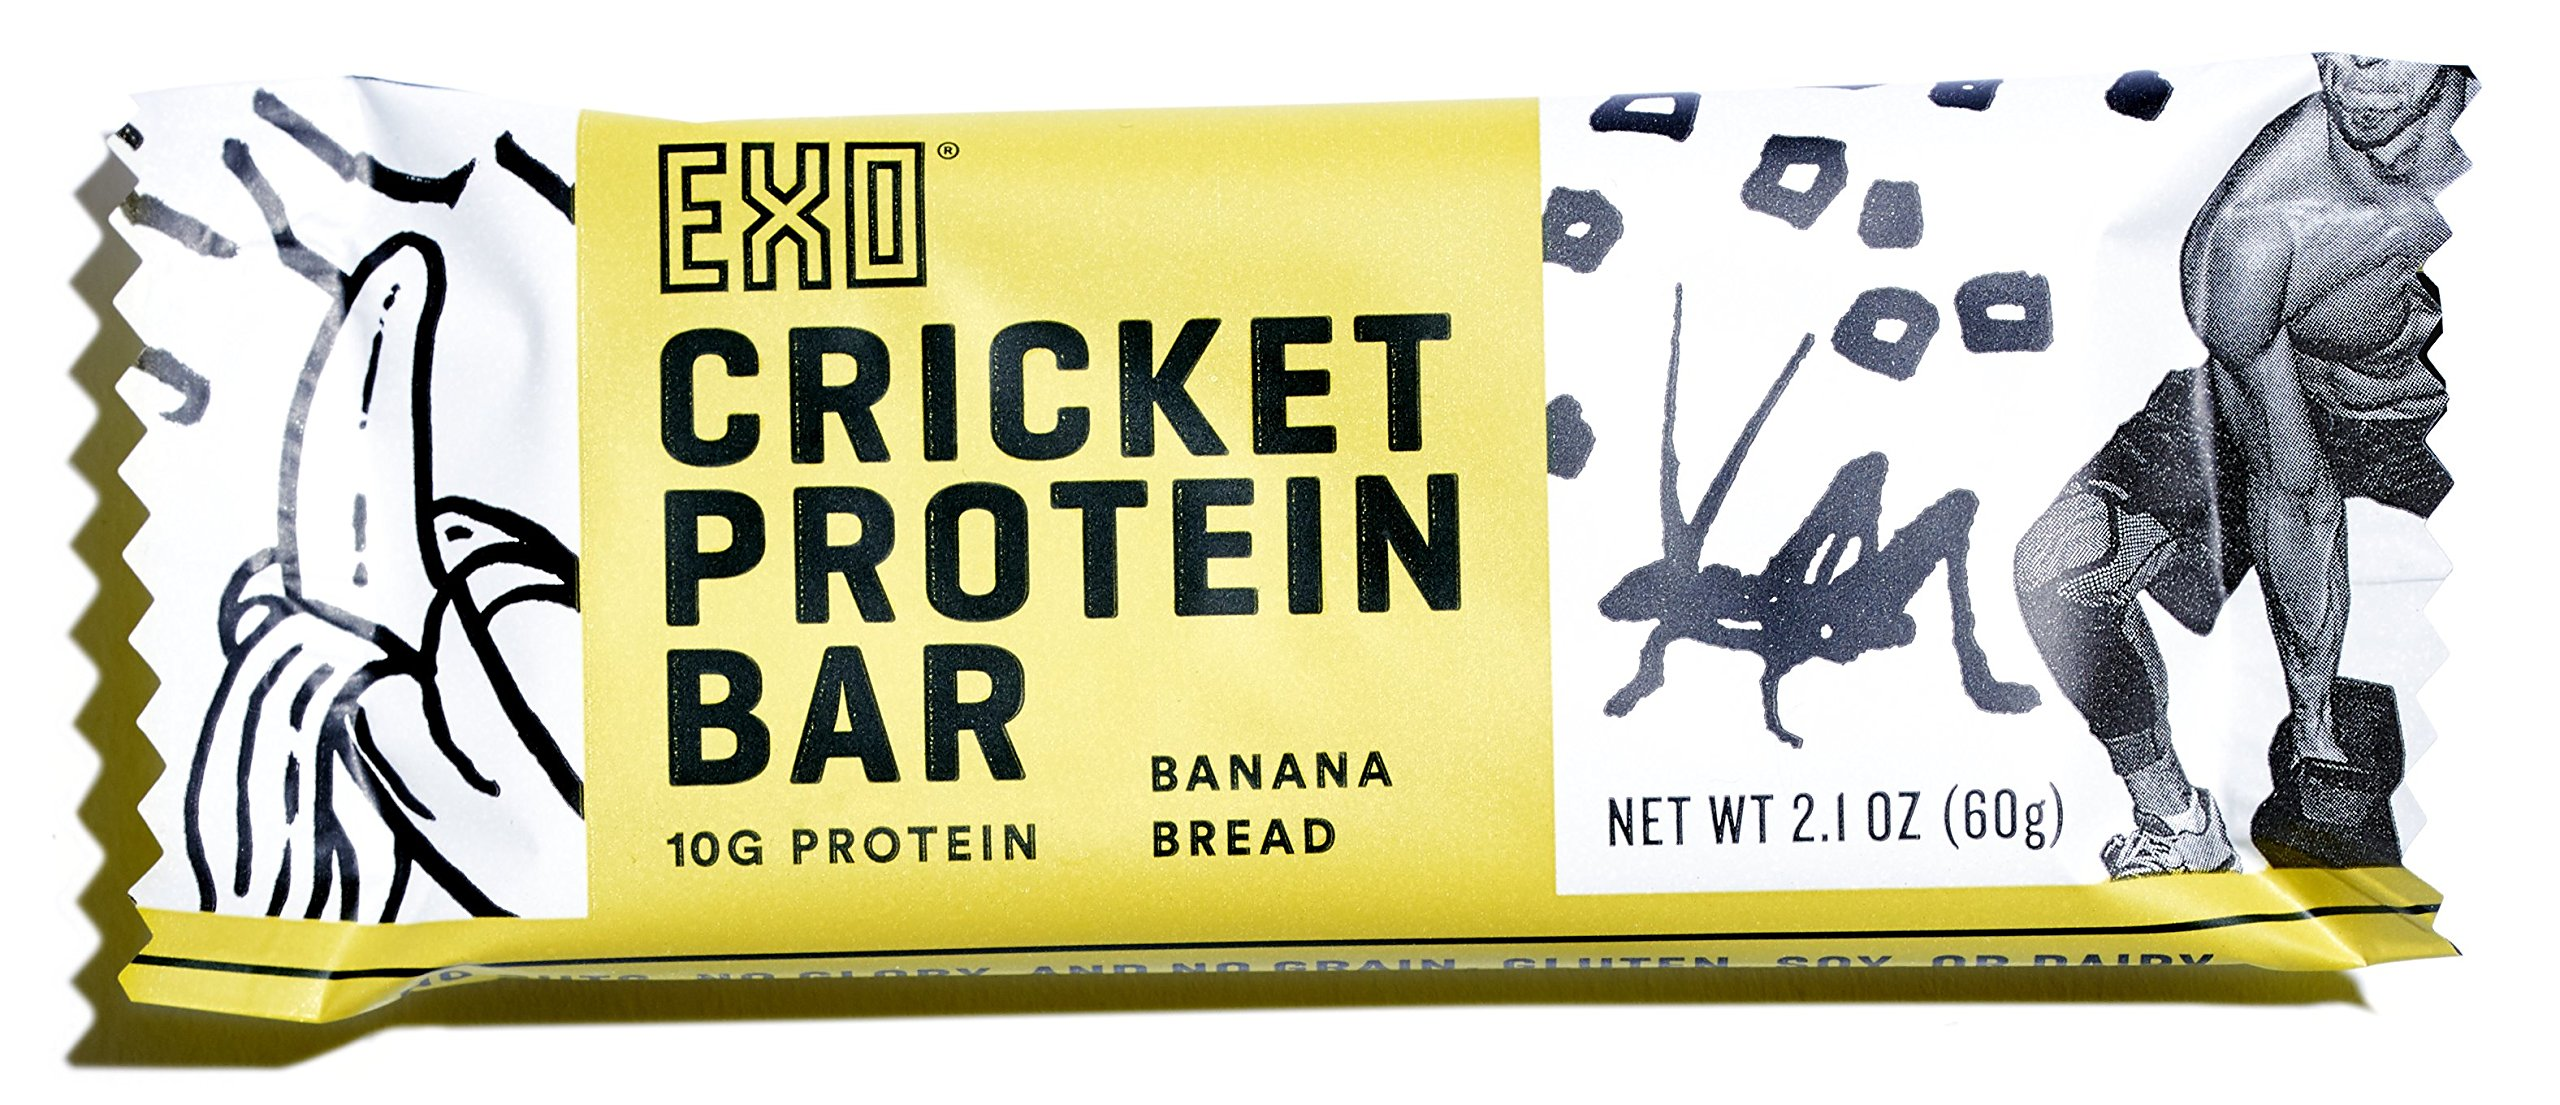 Exo Cricket Flour Protein Bars, Banana Bread, 12Count, 10g Protein, Paleo Friendly, Gluten-free, High Fiber, Dairy Free Energy Bars by EXO